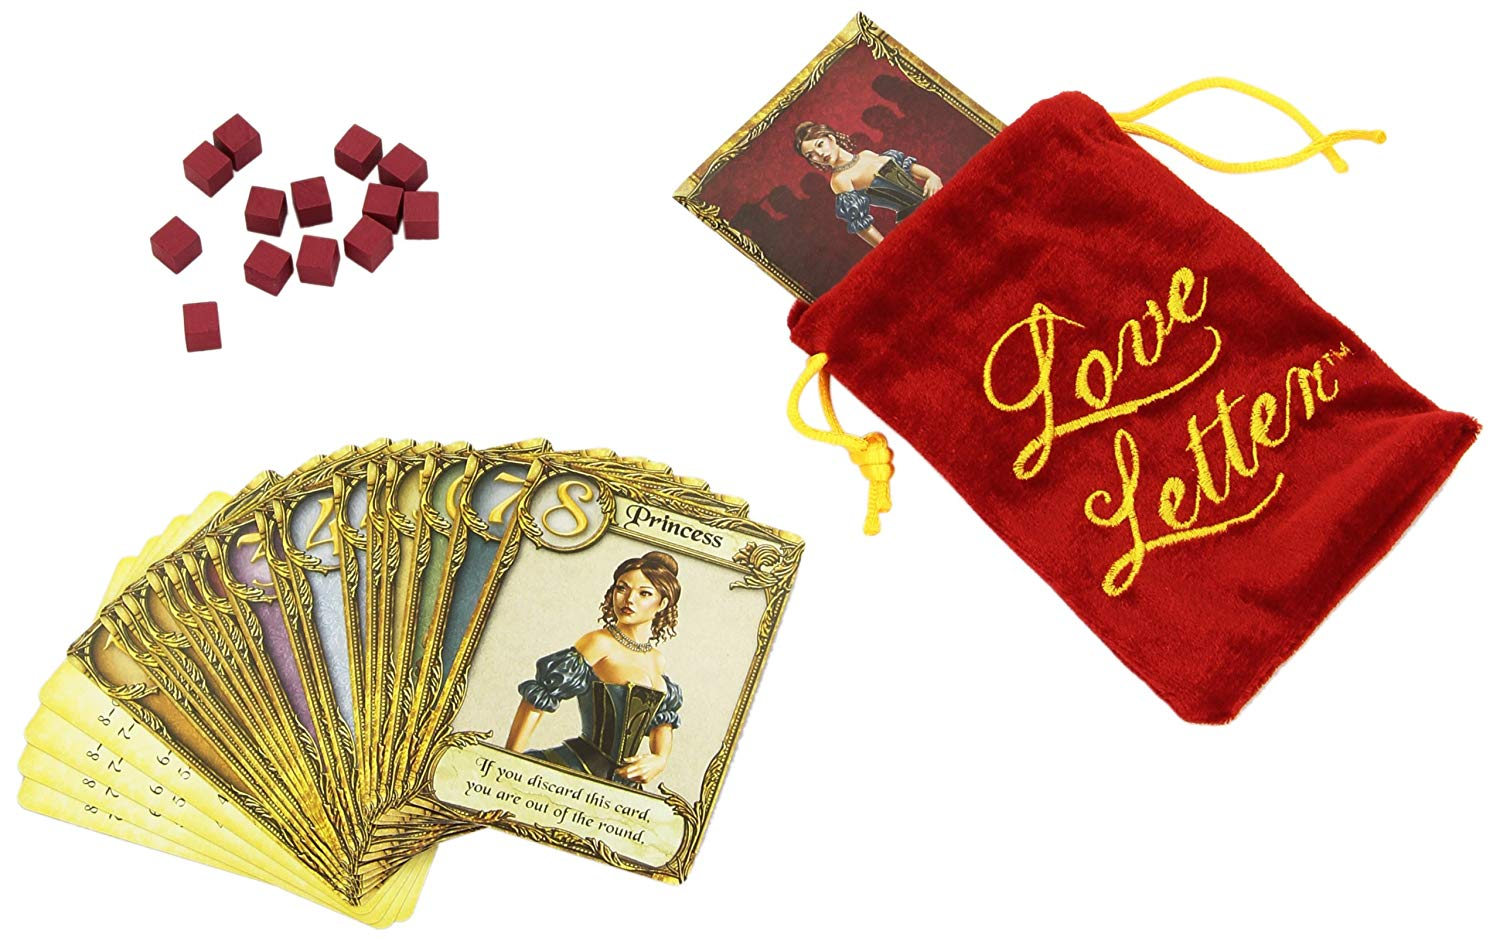 the best card games for families love letter.jpg